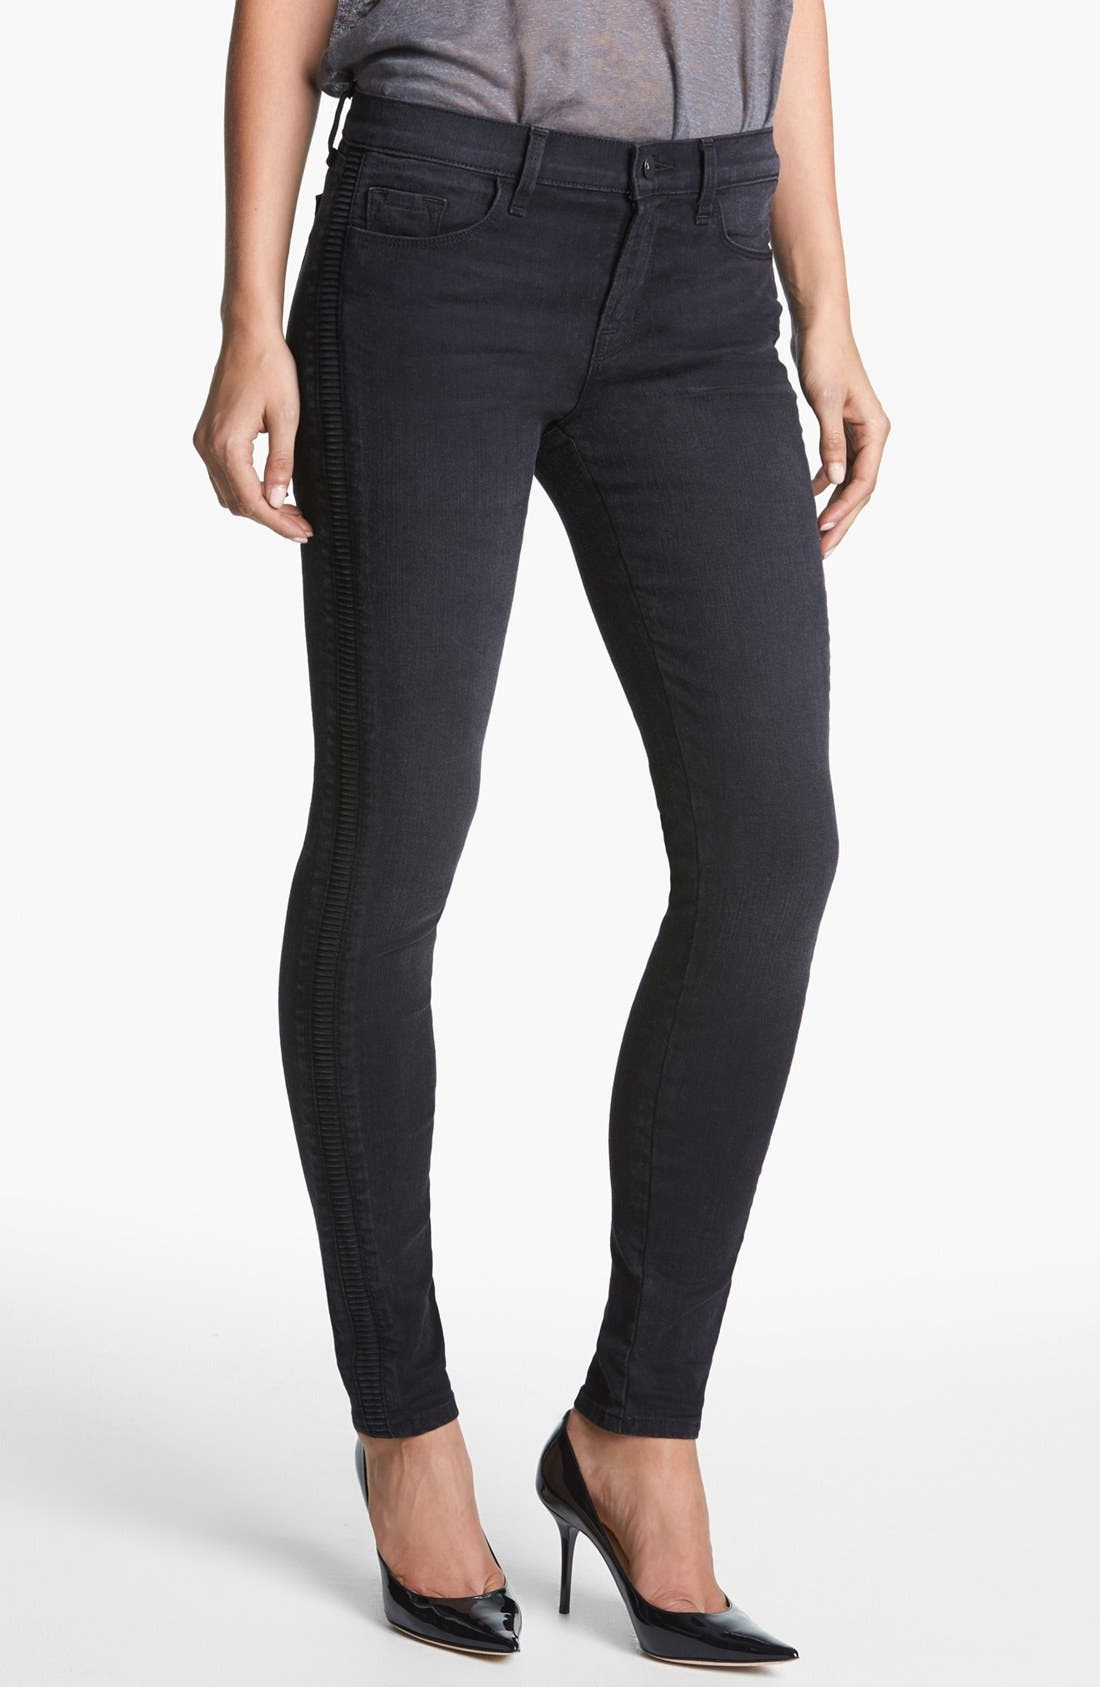 Alternate Image 1 Selected - J Brand '8072 The Liberty' Side Pleat Skinny Jeans (Graphite)